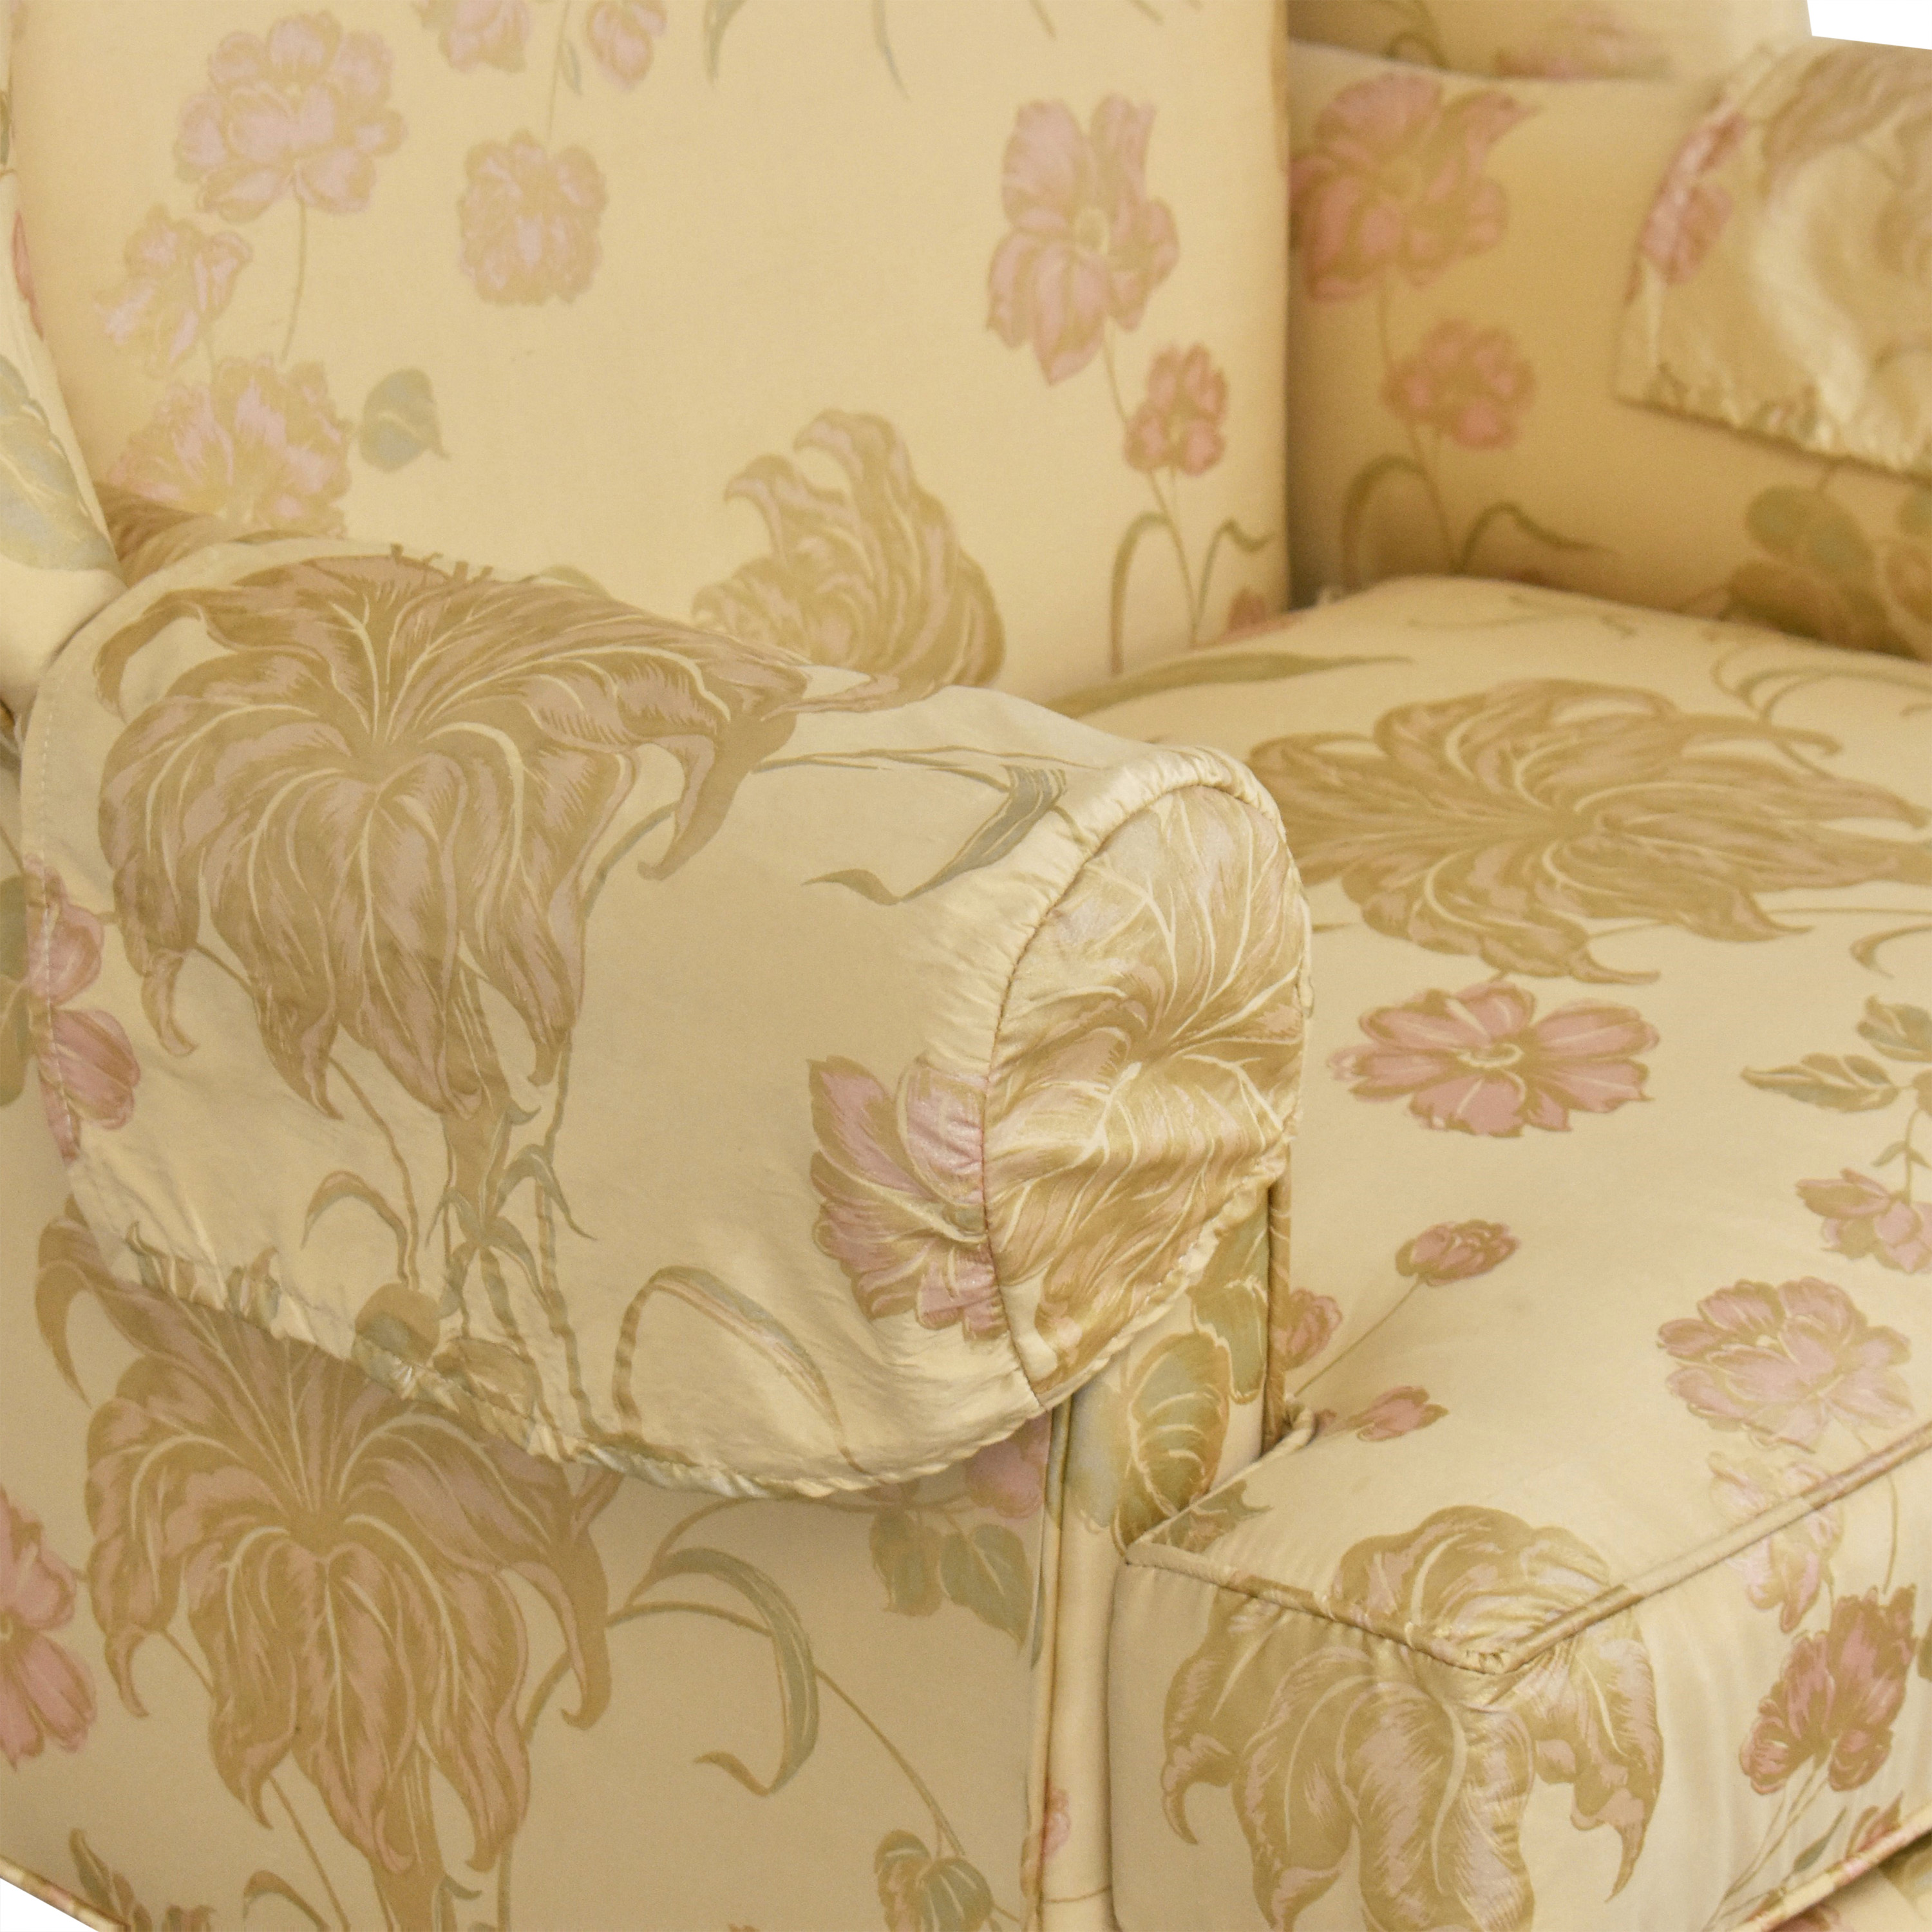 CR Laine CR Laine Upholstered Accent Chair pa